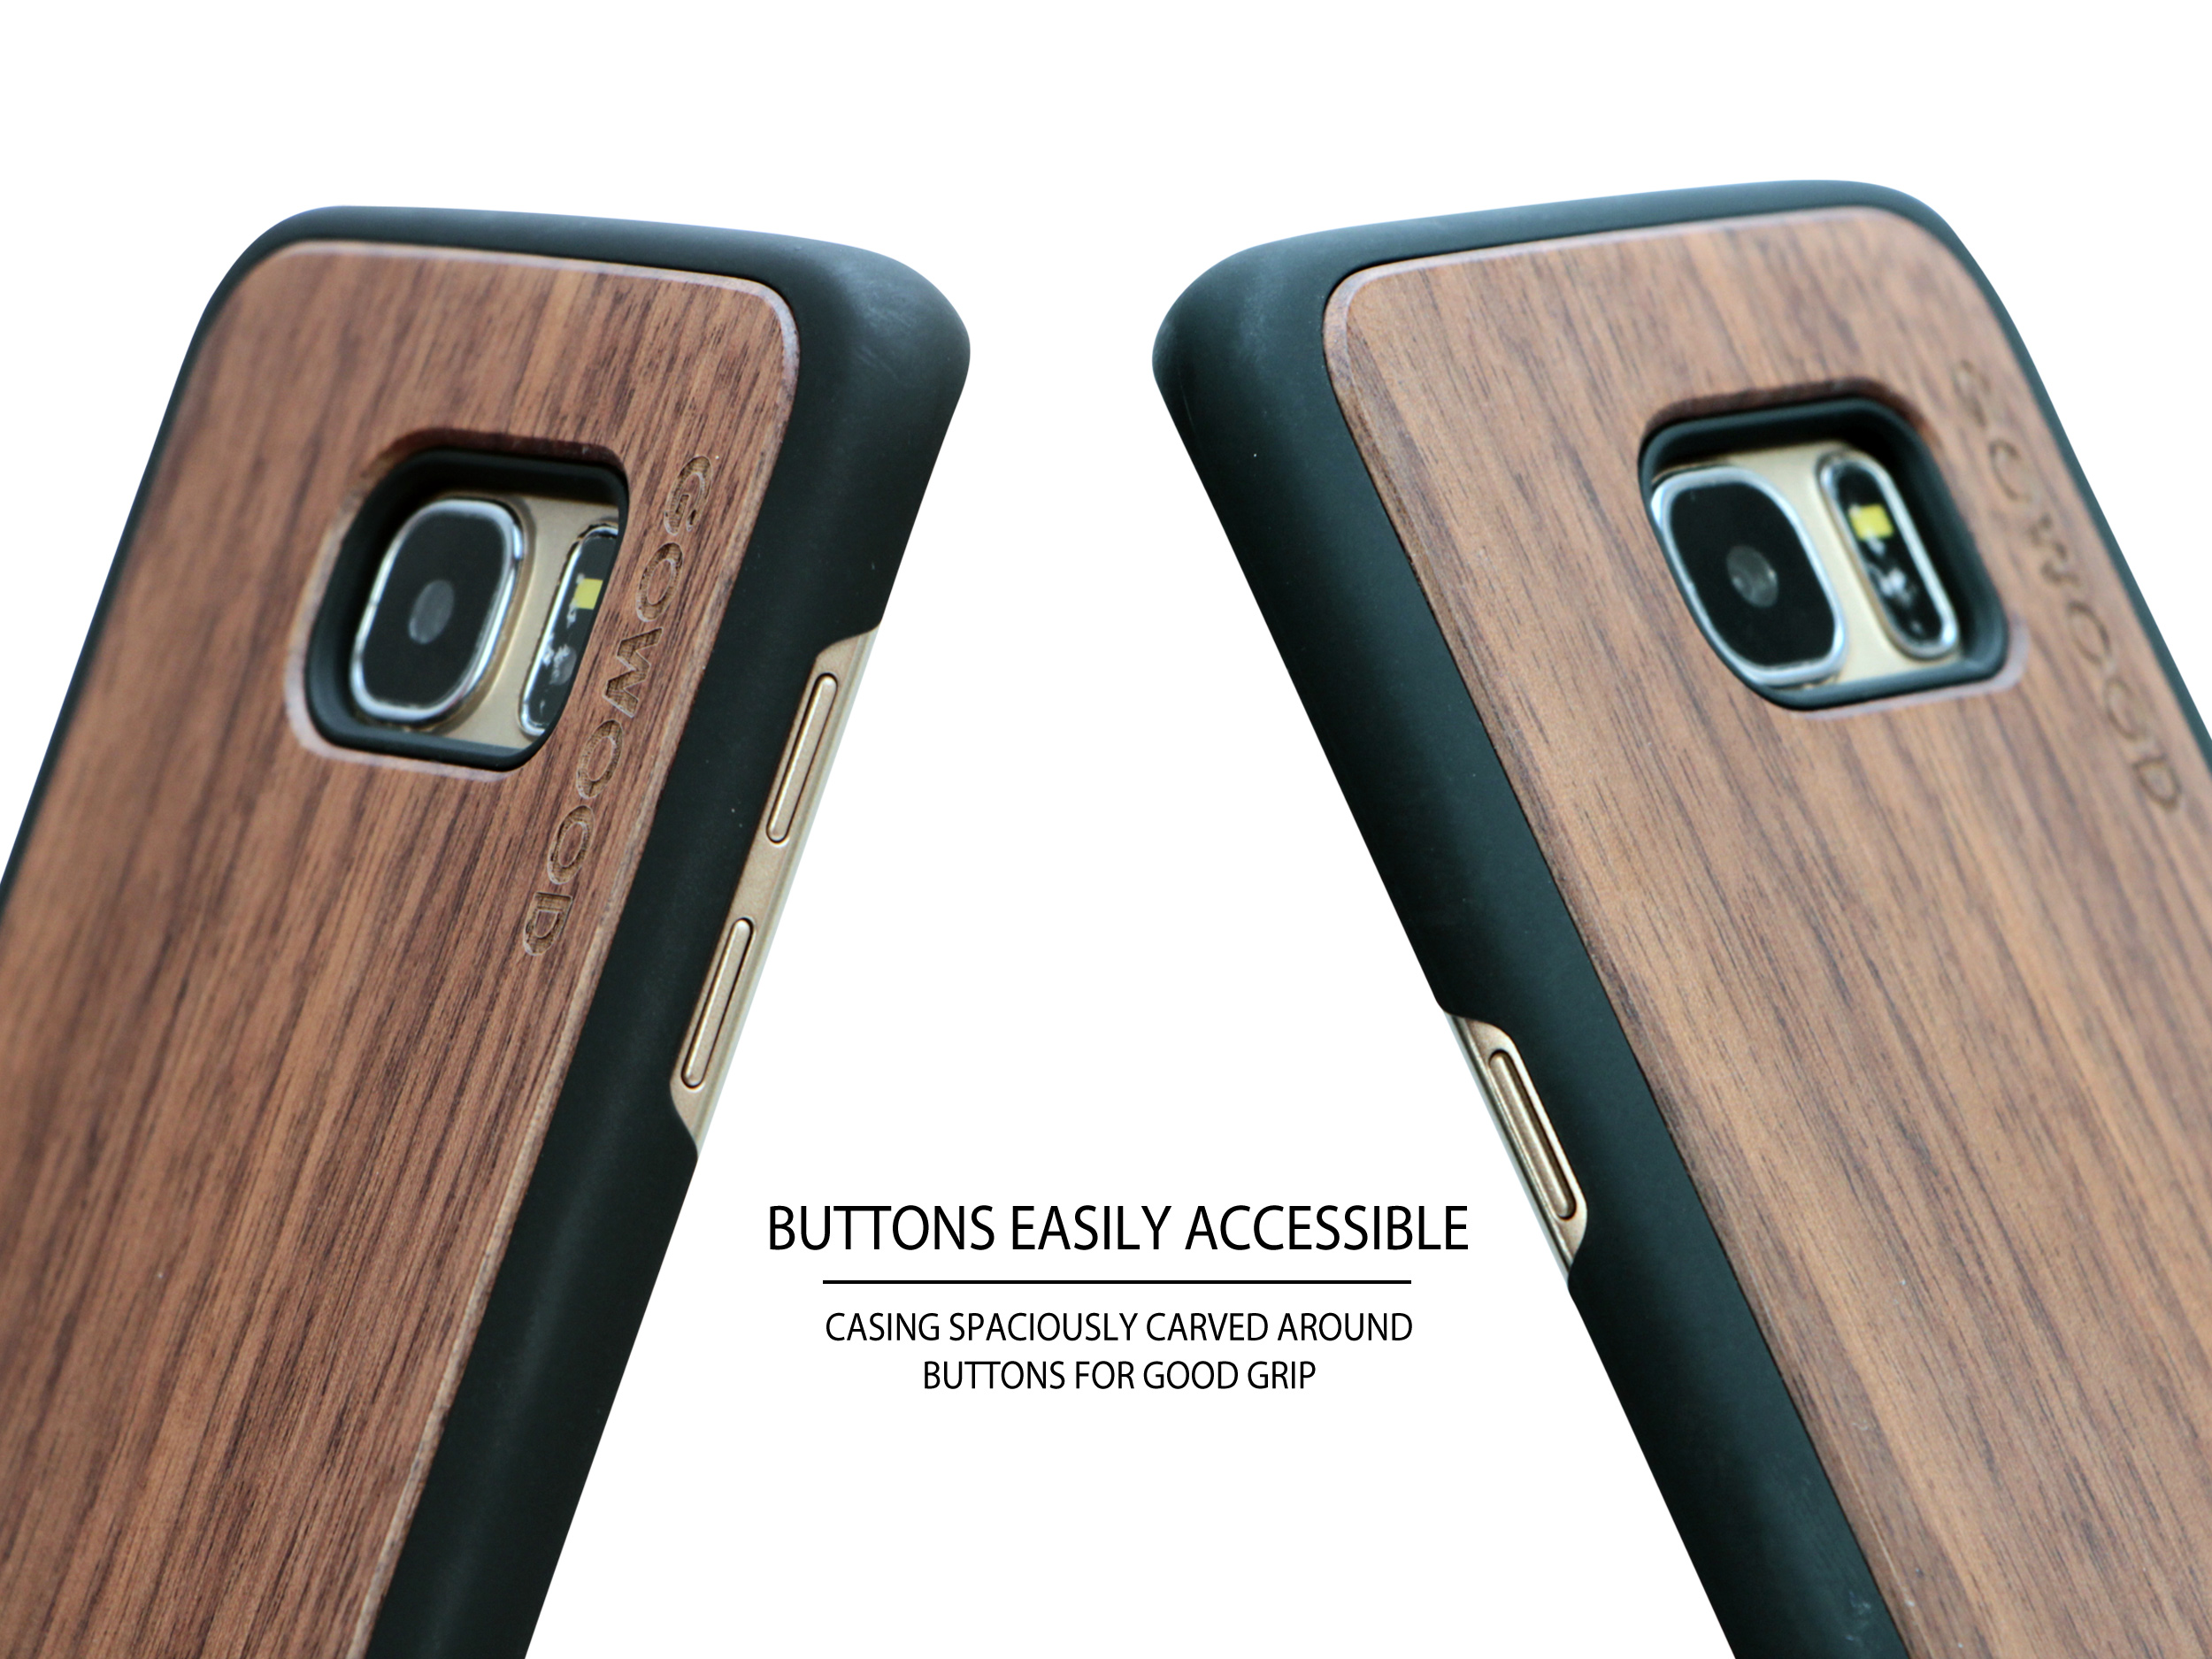 Samsung Galaxy S7 Edge hoesje walnoot buttons